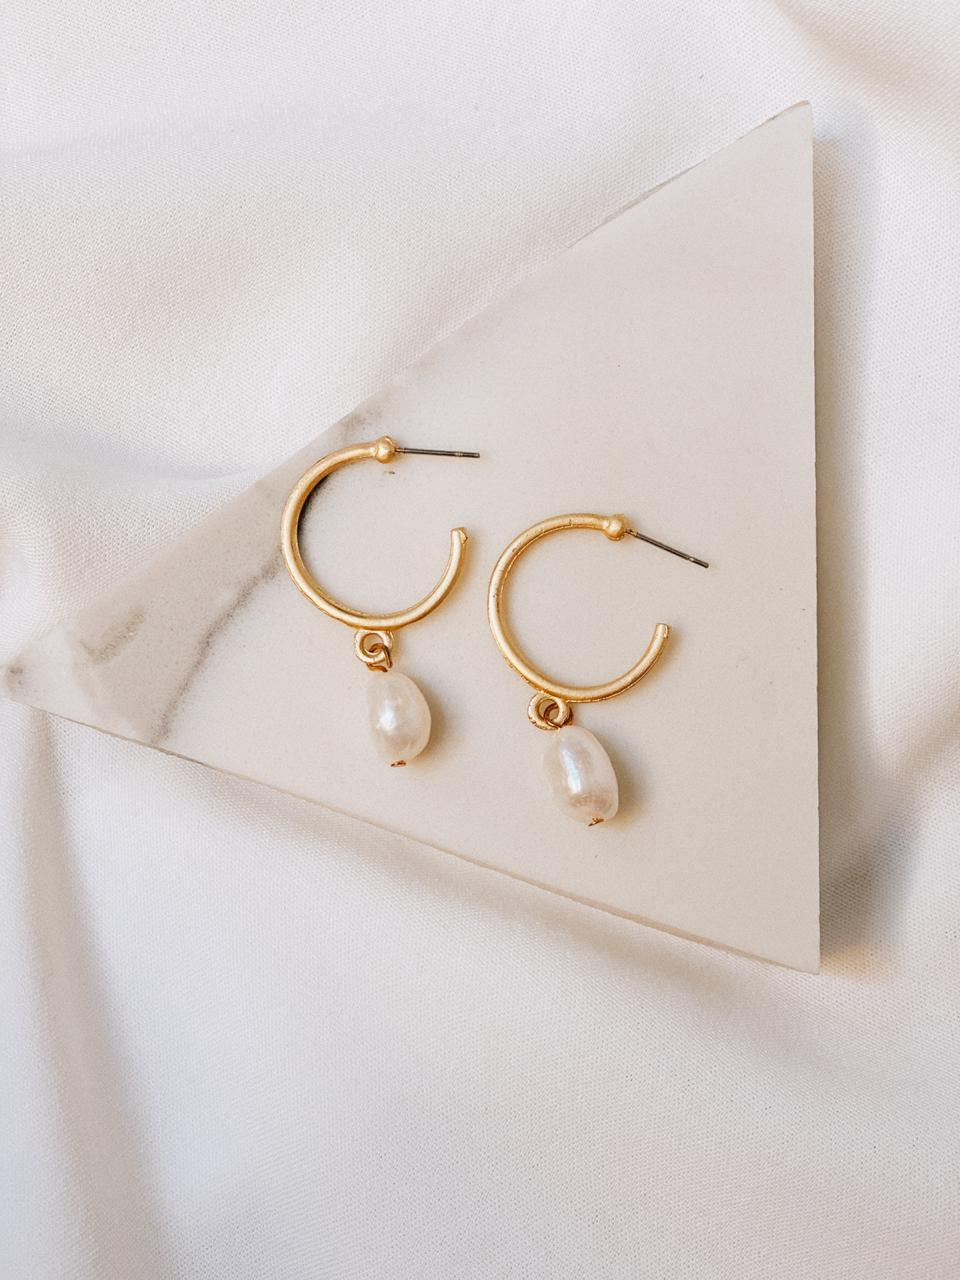 Gold hoops with hanging pearl